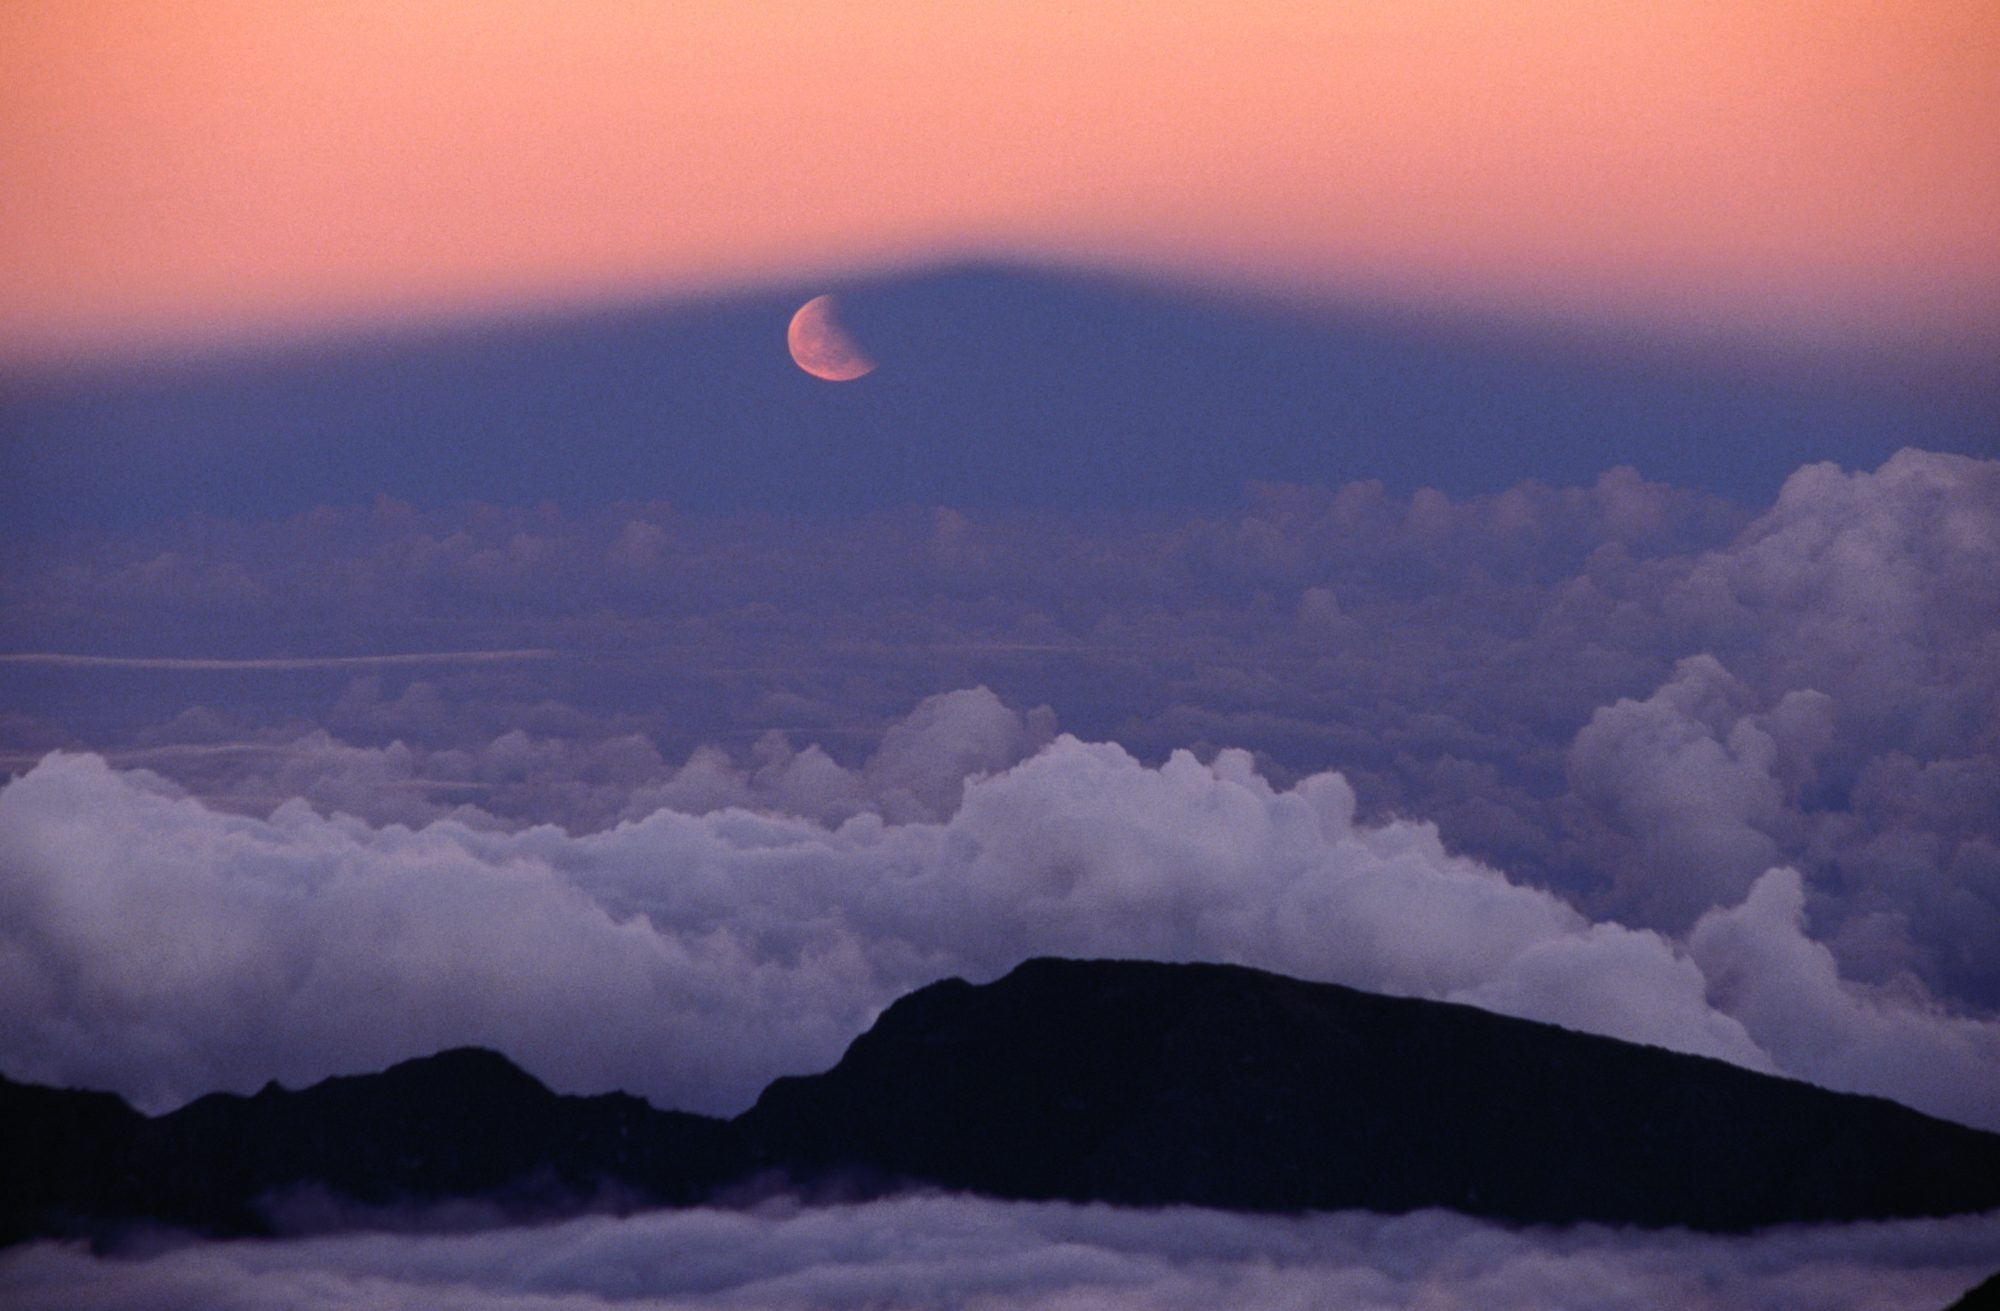 Lunar eclipse at sunset with a moonrise from the summit of Mt Haleakala